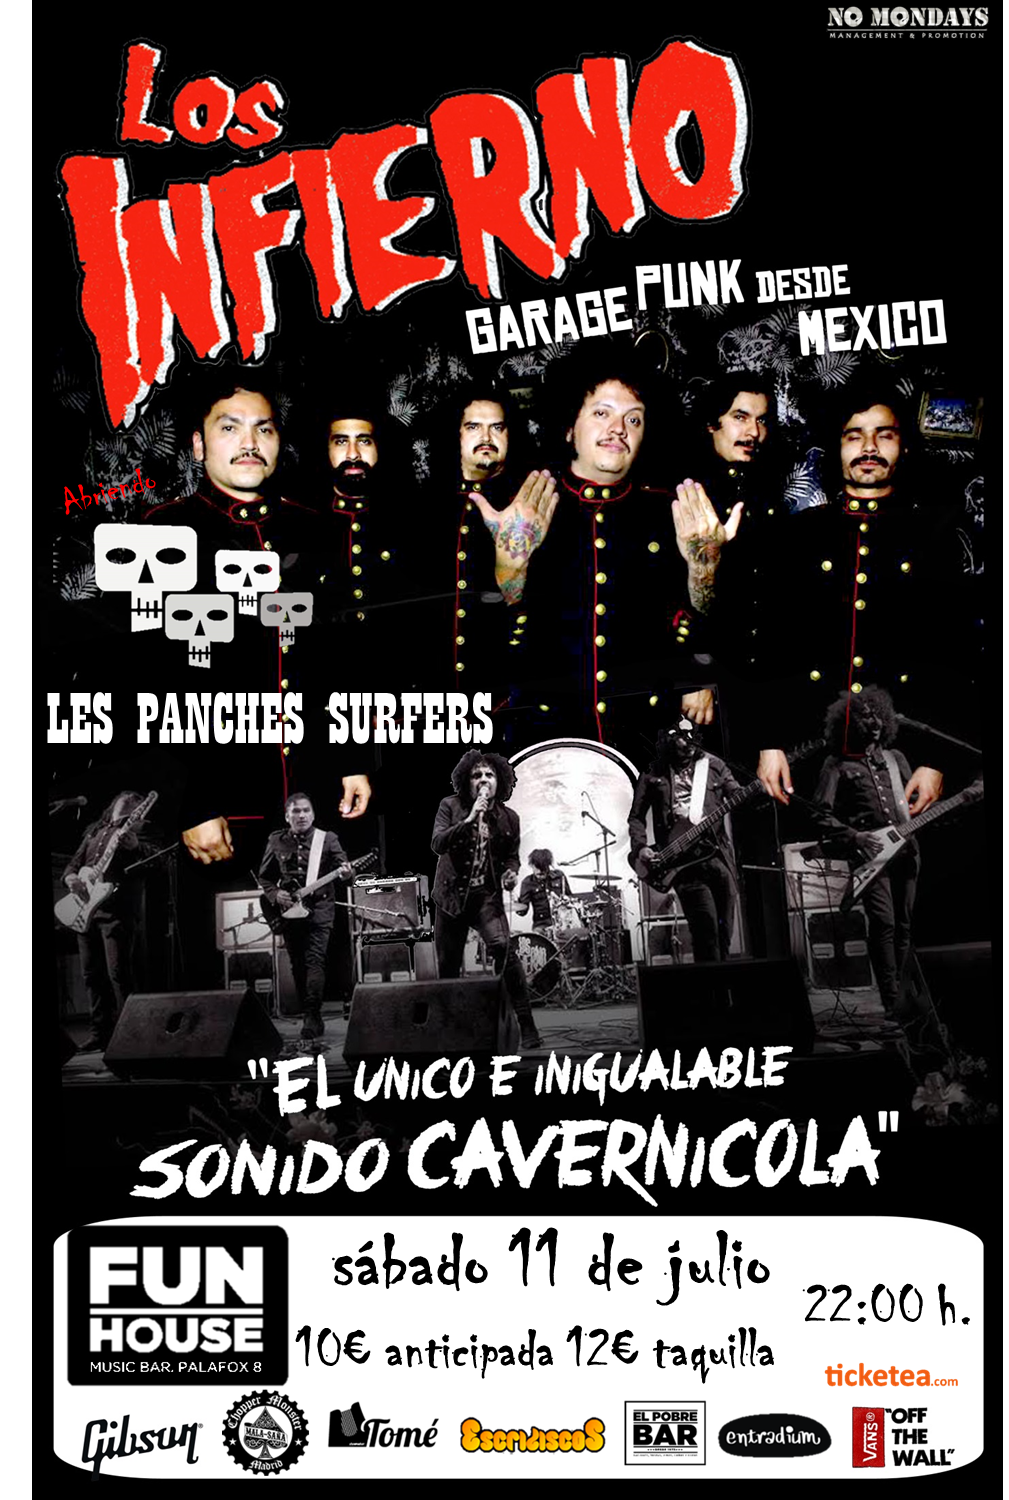 Los Infierno + Les Panches Surfers - 11/07/2015 - Fun House